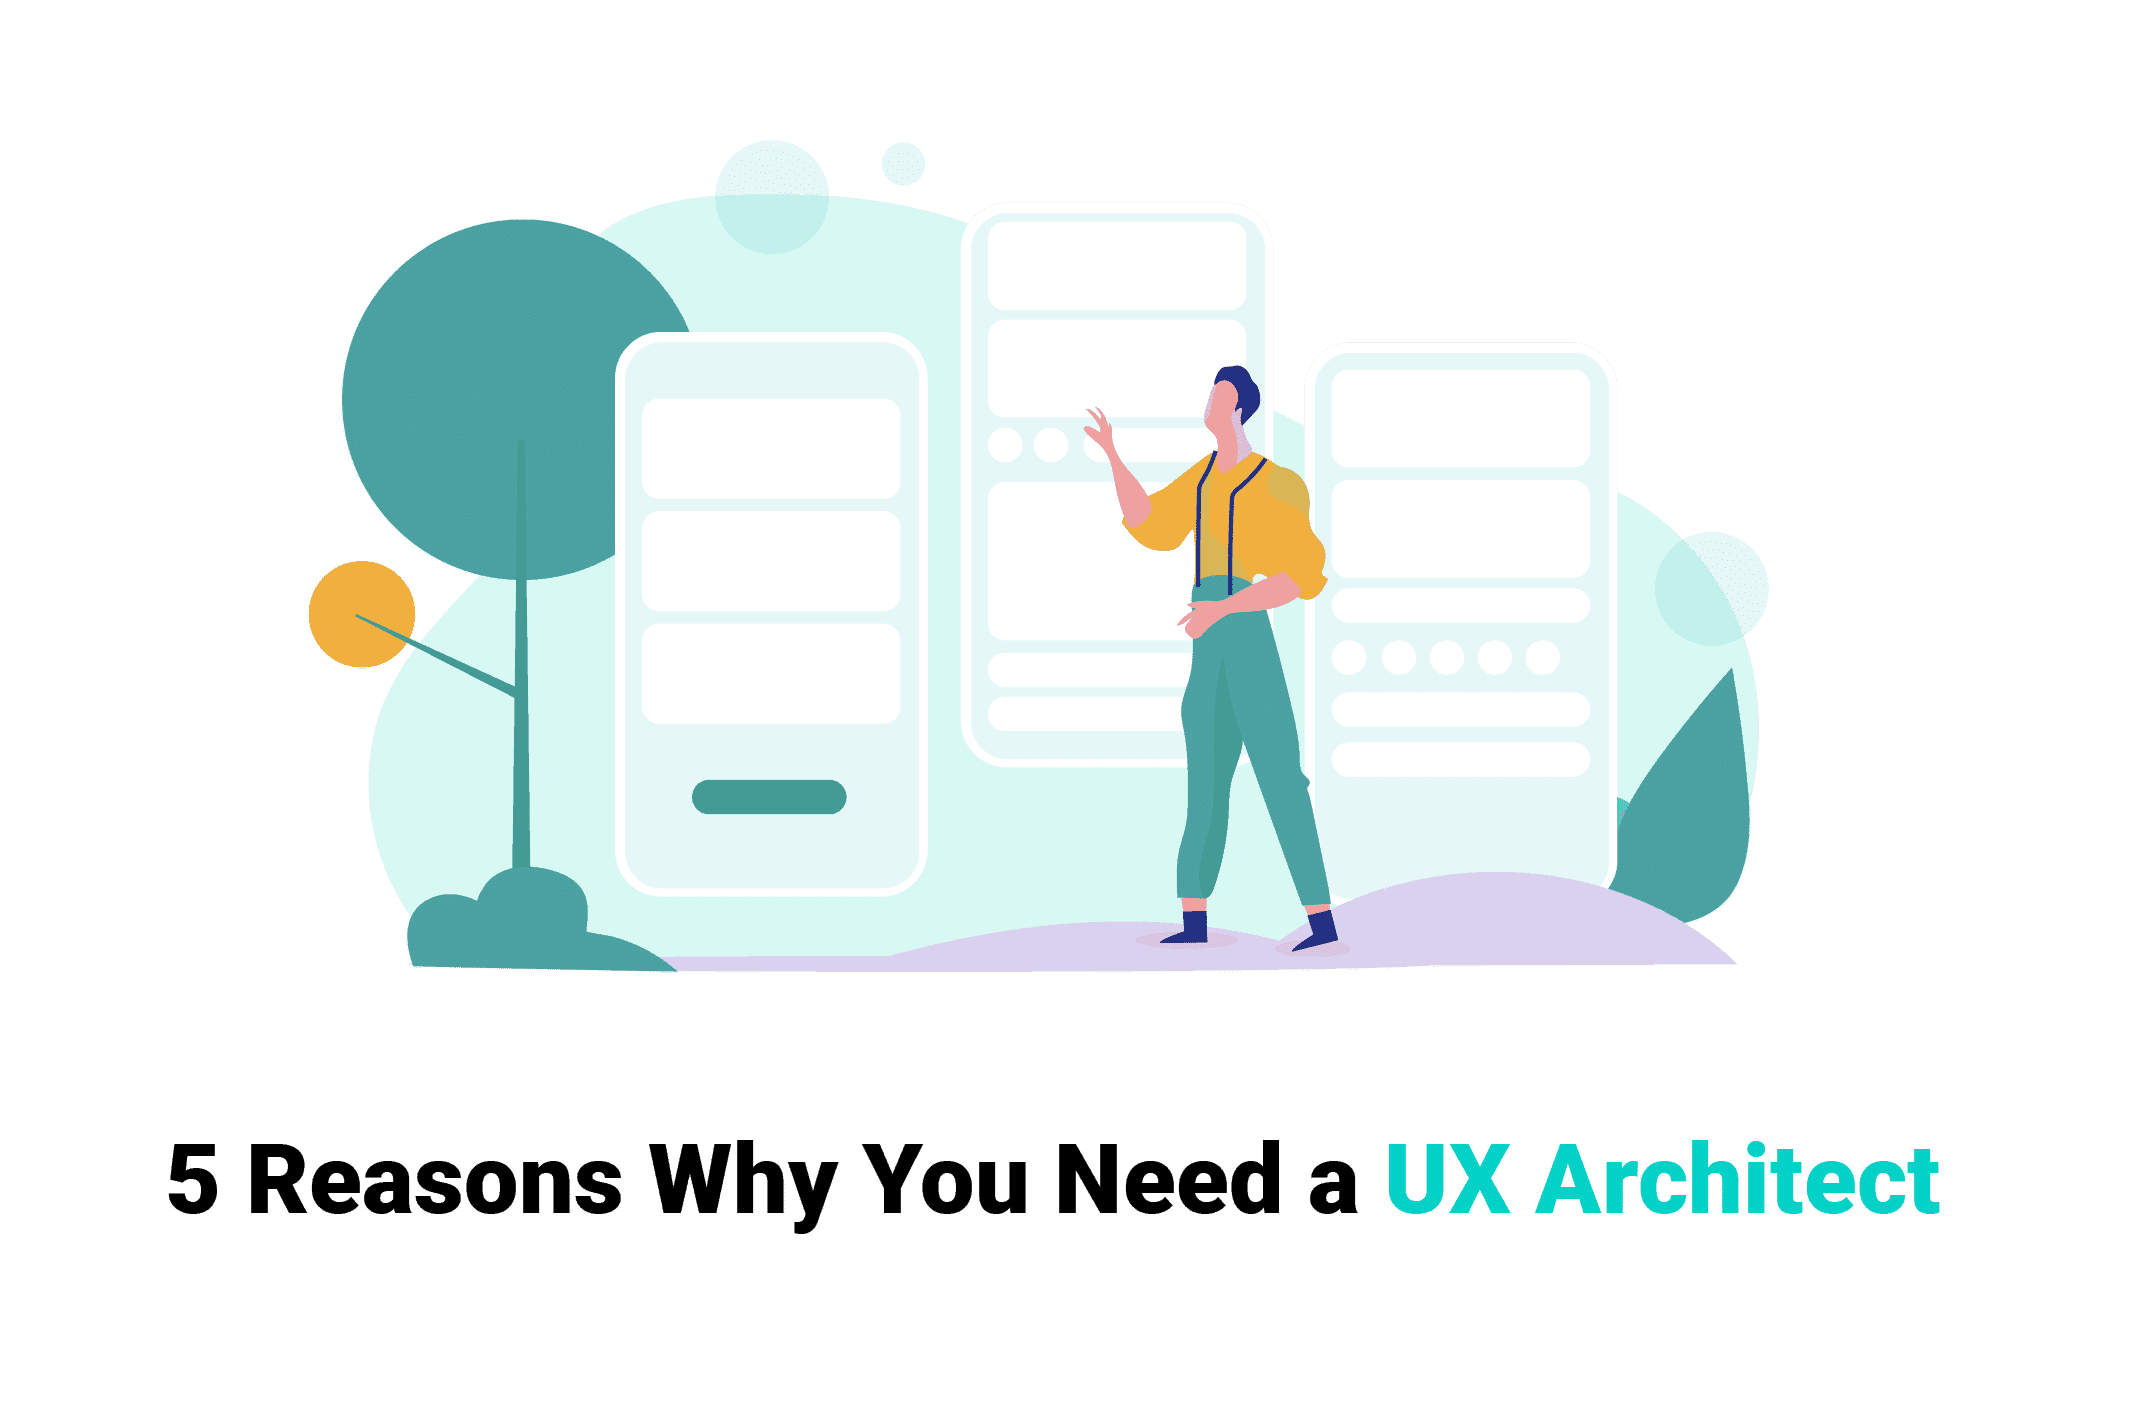 5 Reasons Why You Need a UX Architect presented by an award-winning Remote Team of Designers, WANDR Studio - #1 Product Strategy and UX Design Firm